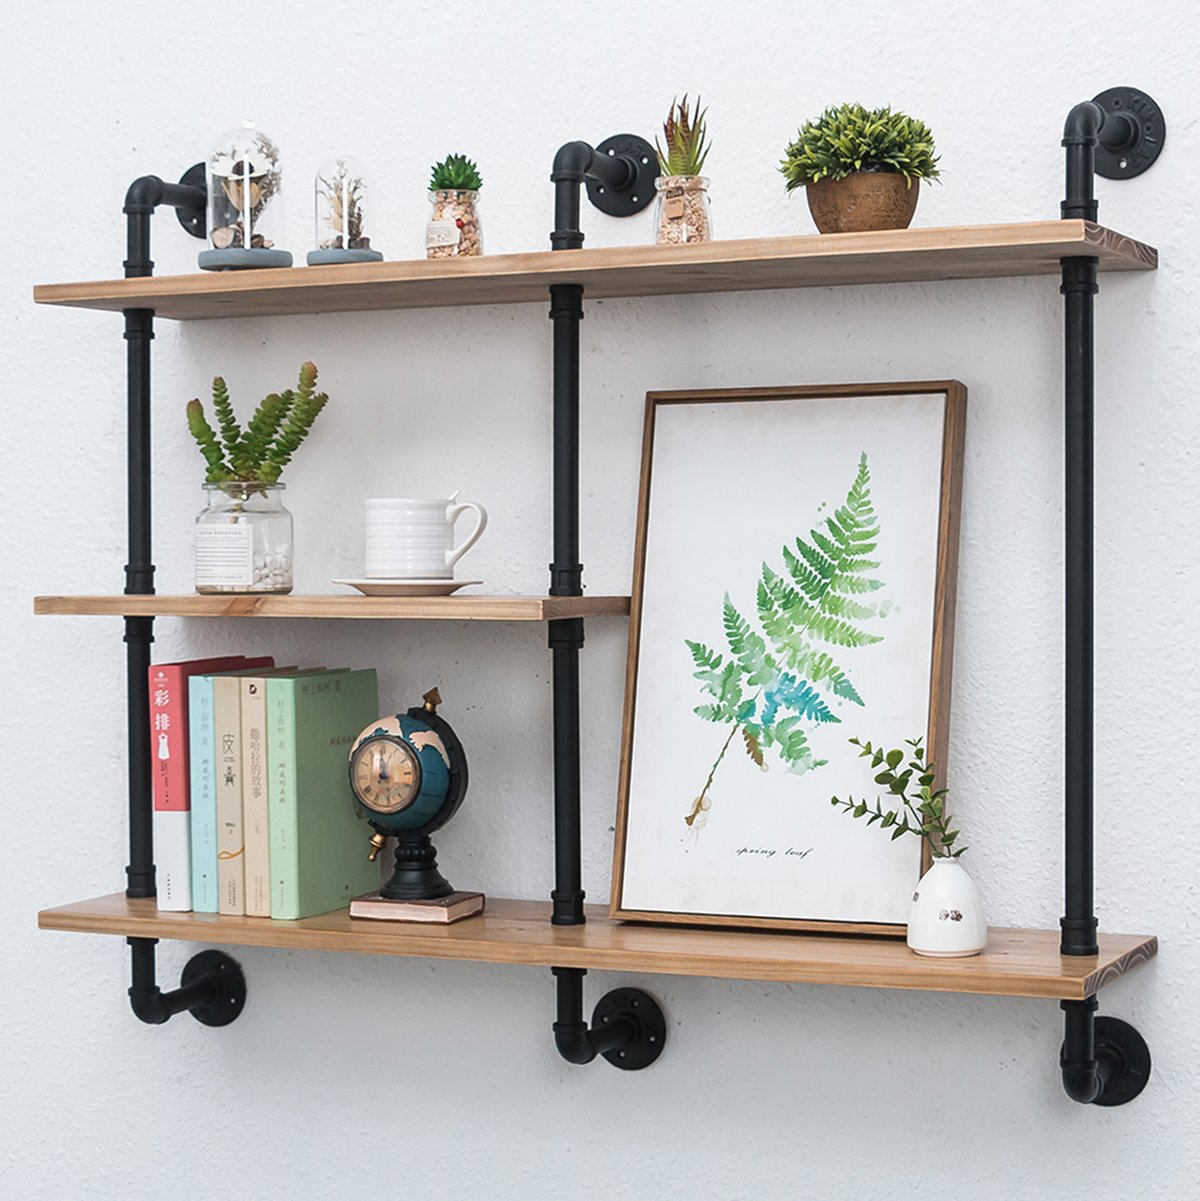 Swell Industrial Pipe Shelf With Wood 43 3In Rustic Wall Mount Shelf 3 Tiers Metal Hung Bracket Bookshelf Diy Storage Shelving Floating Shelves Home Remodeling Inspirations Genioncuboardxyz